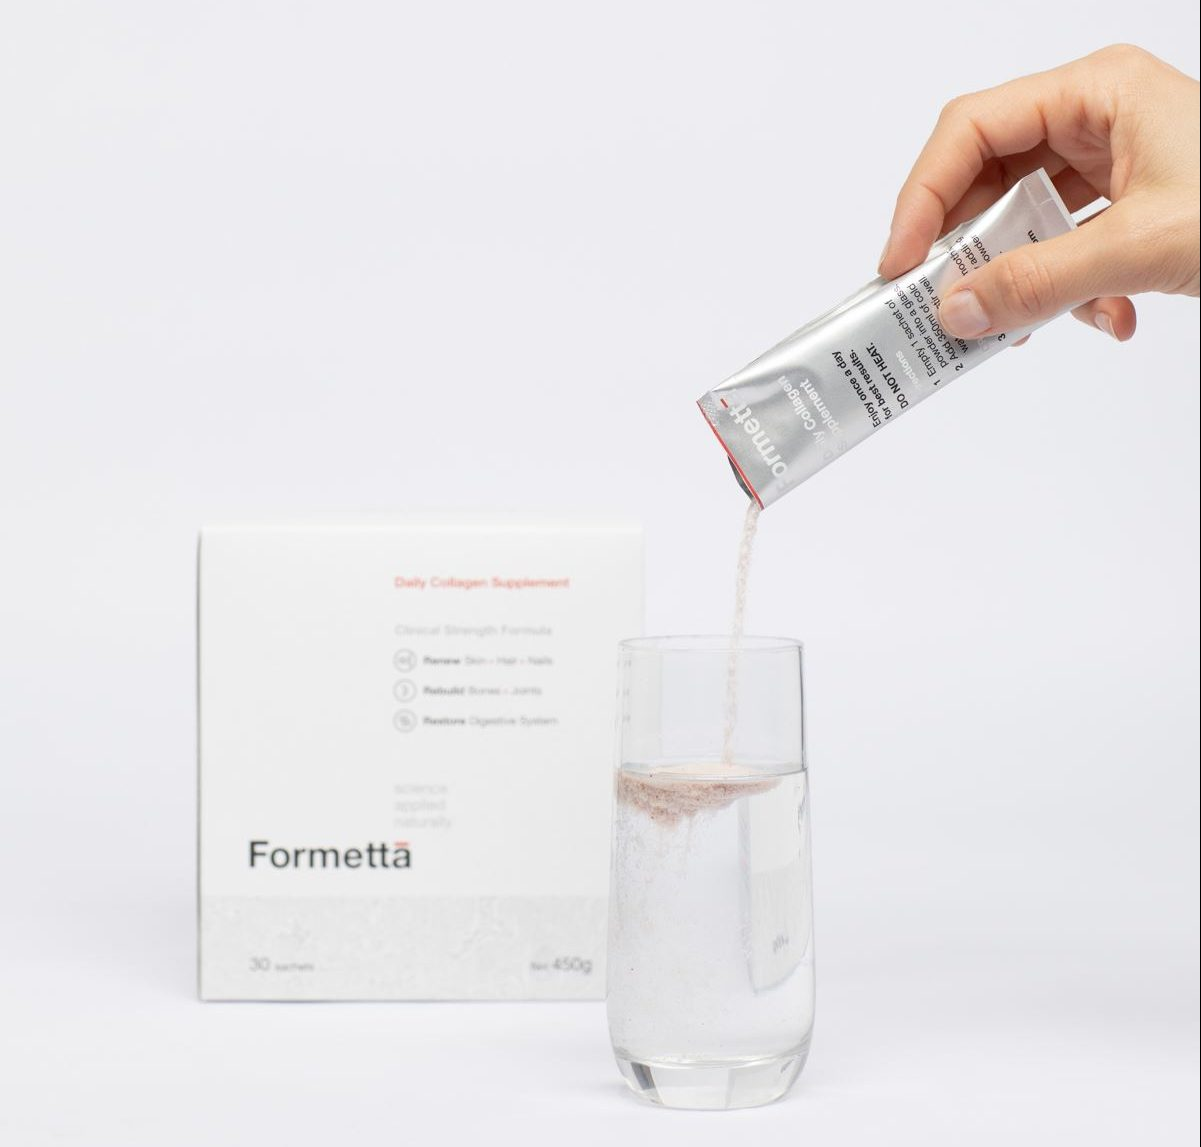 Looking for a Top Quality Collagen Supplement? Discover the benefits of Formettā